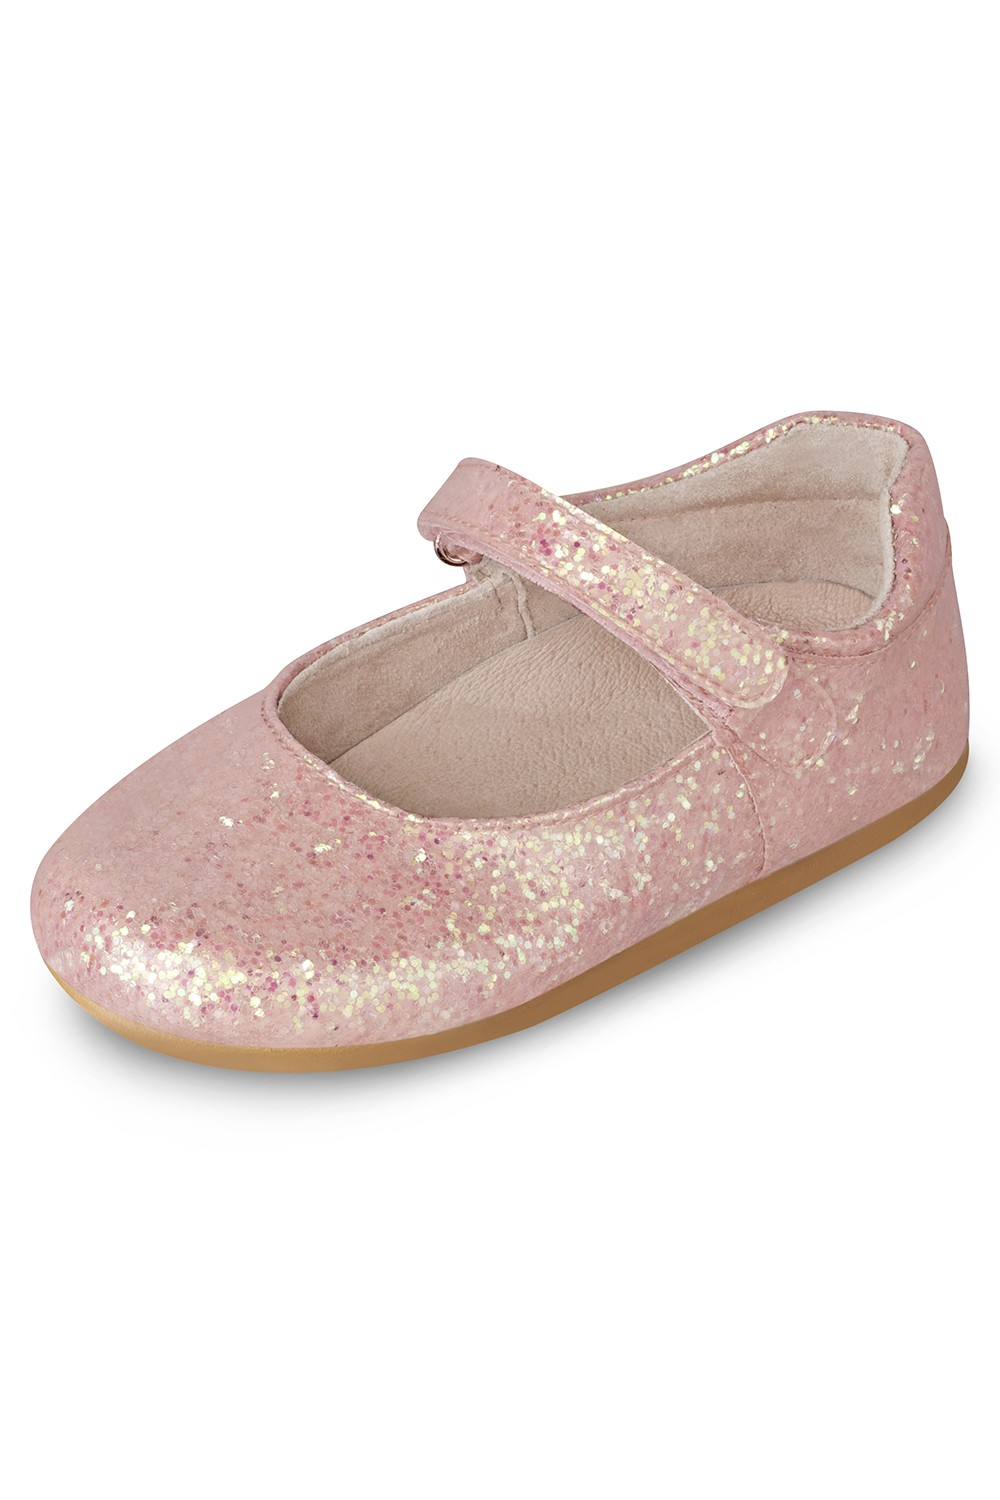 Laine Toddler Ballet Flats Toddlers Fashion Shoes